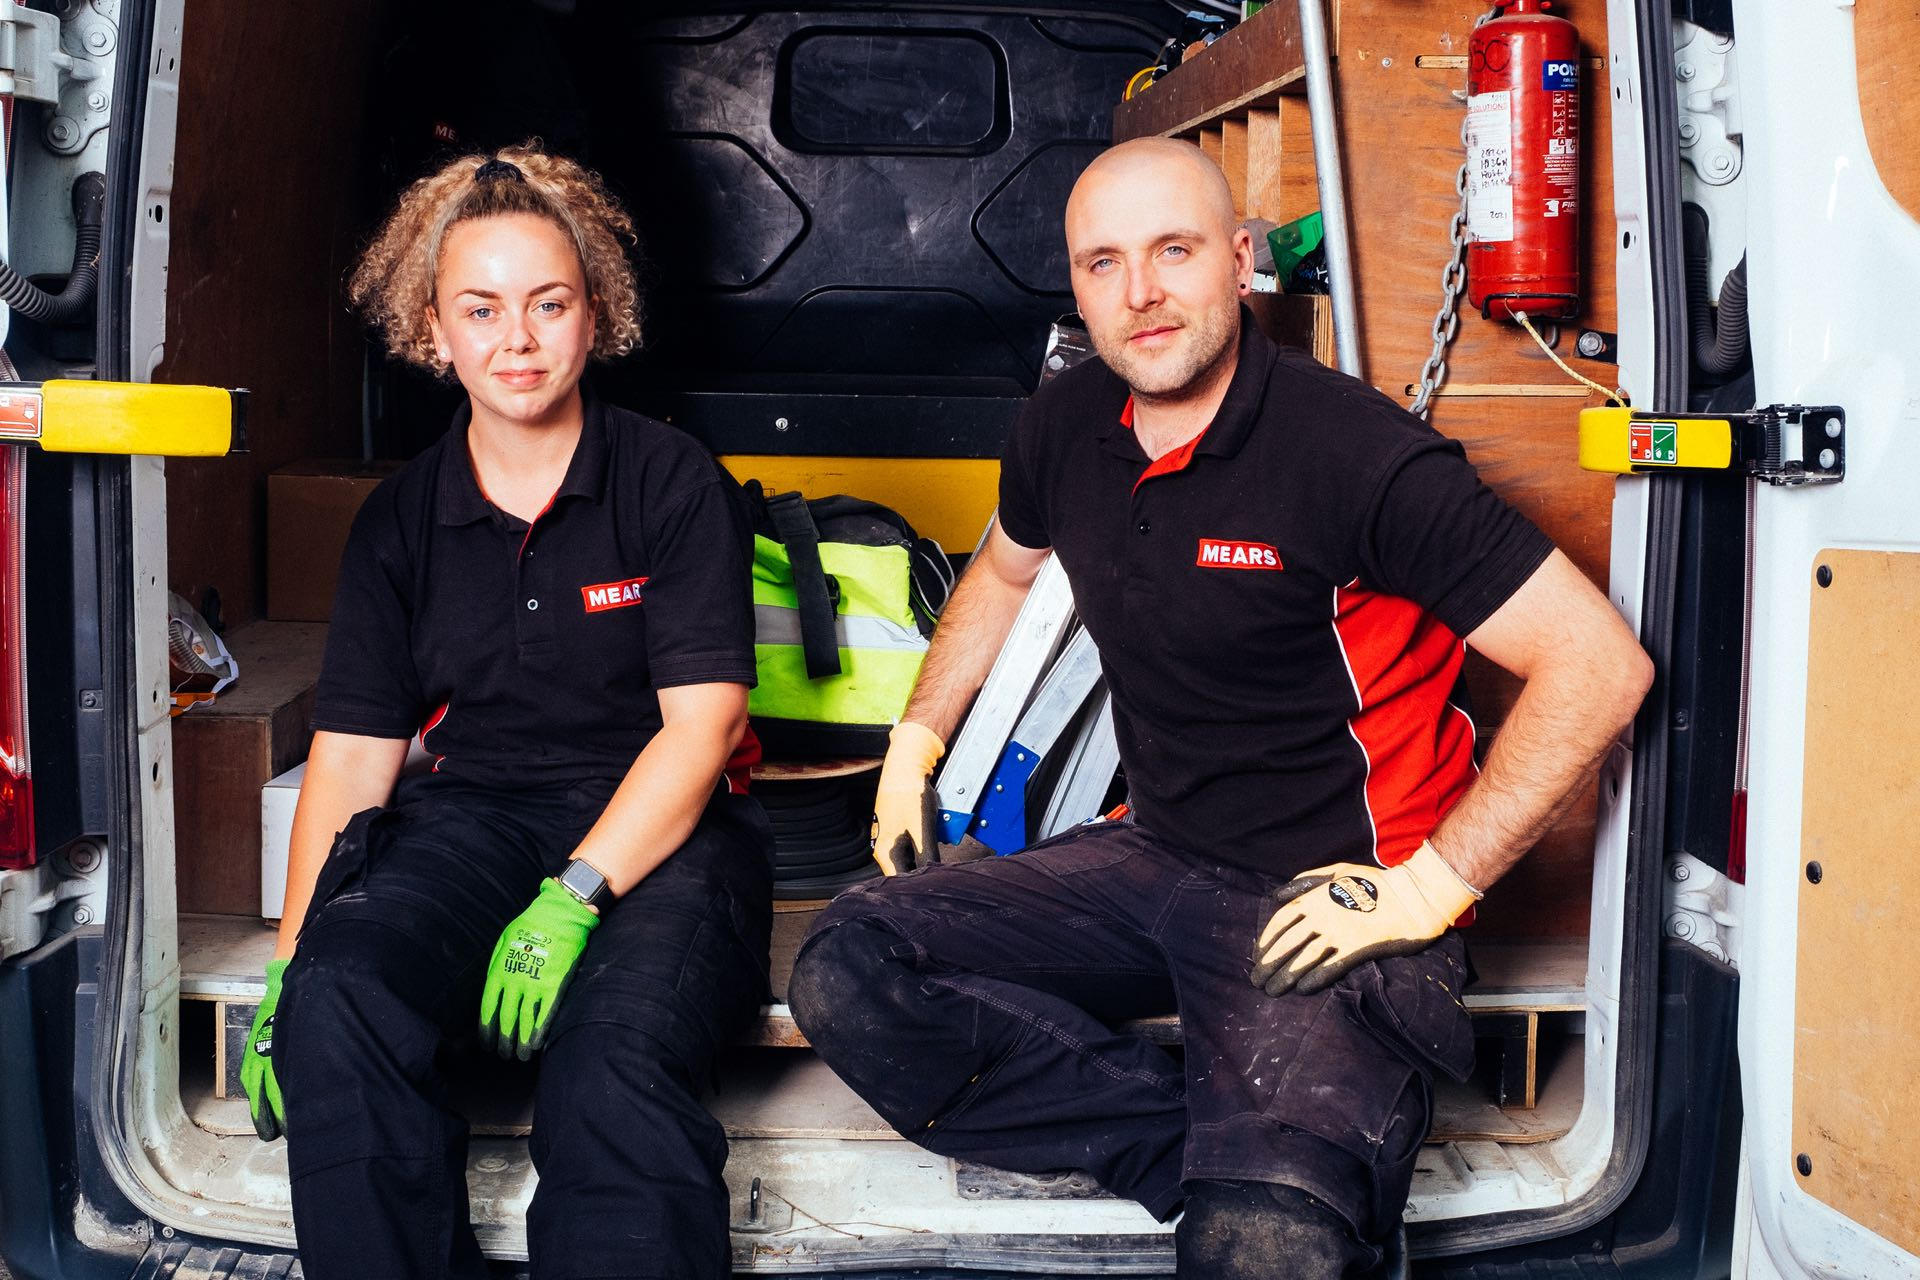 Two Mears colleagues sat in the back of a van wearing protective gloves